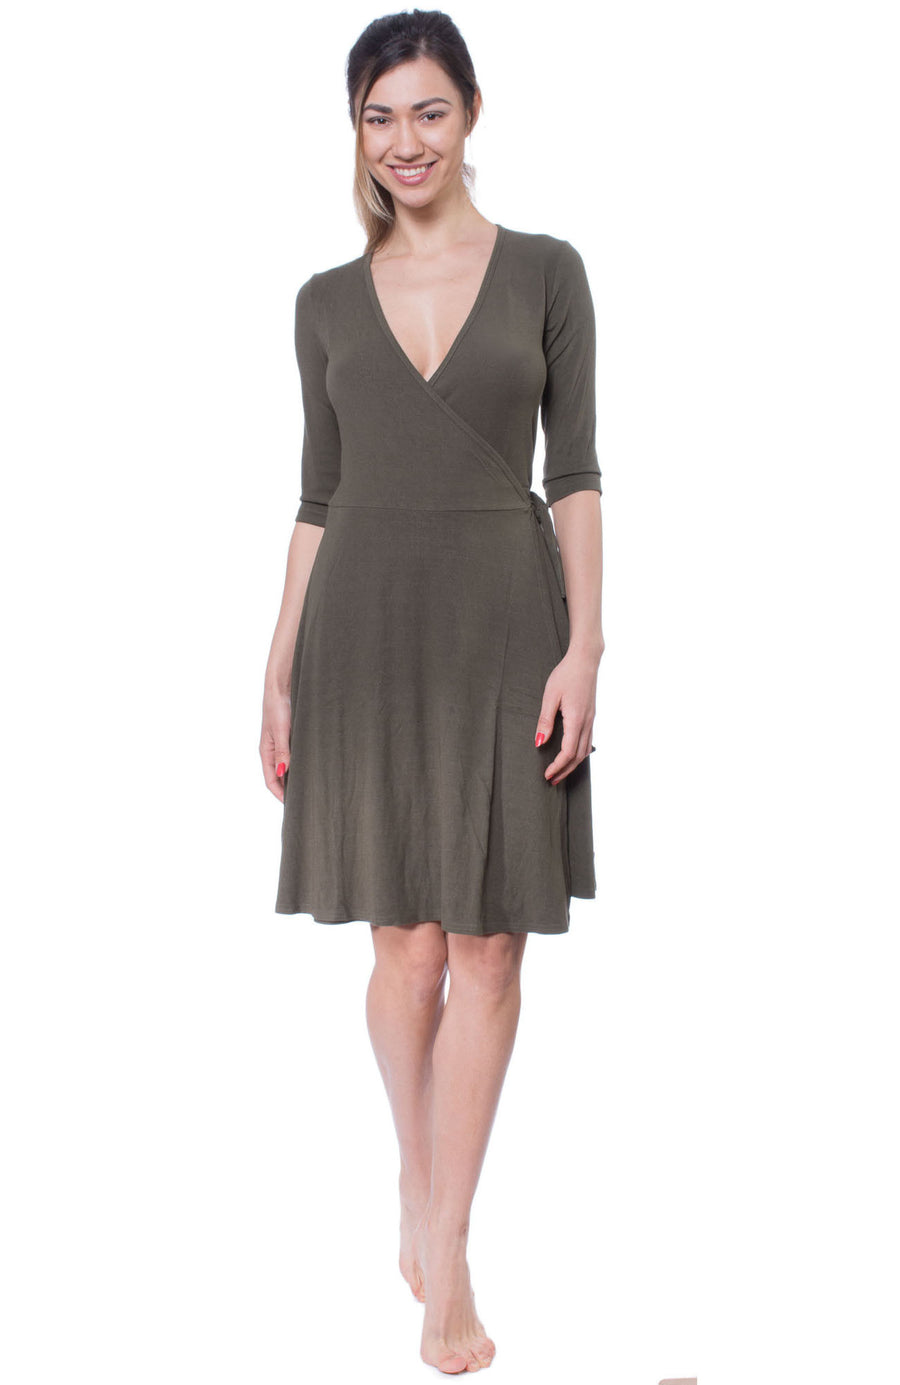 Wrap Dress (Style CREP-07, Olive) by Hard Tail Forever